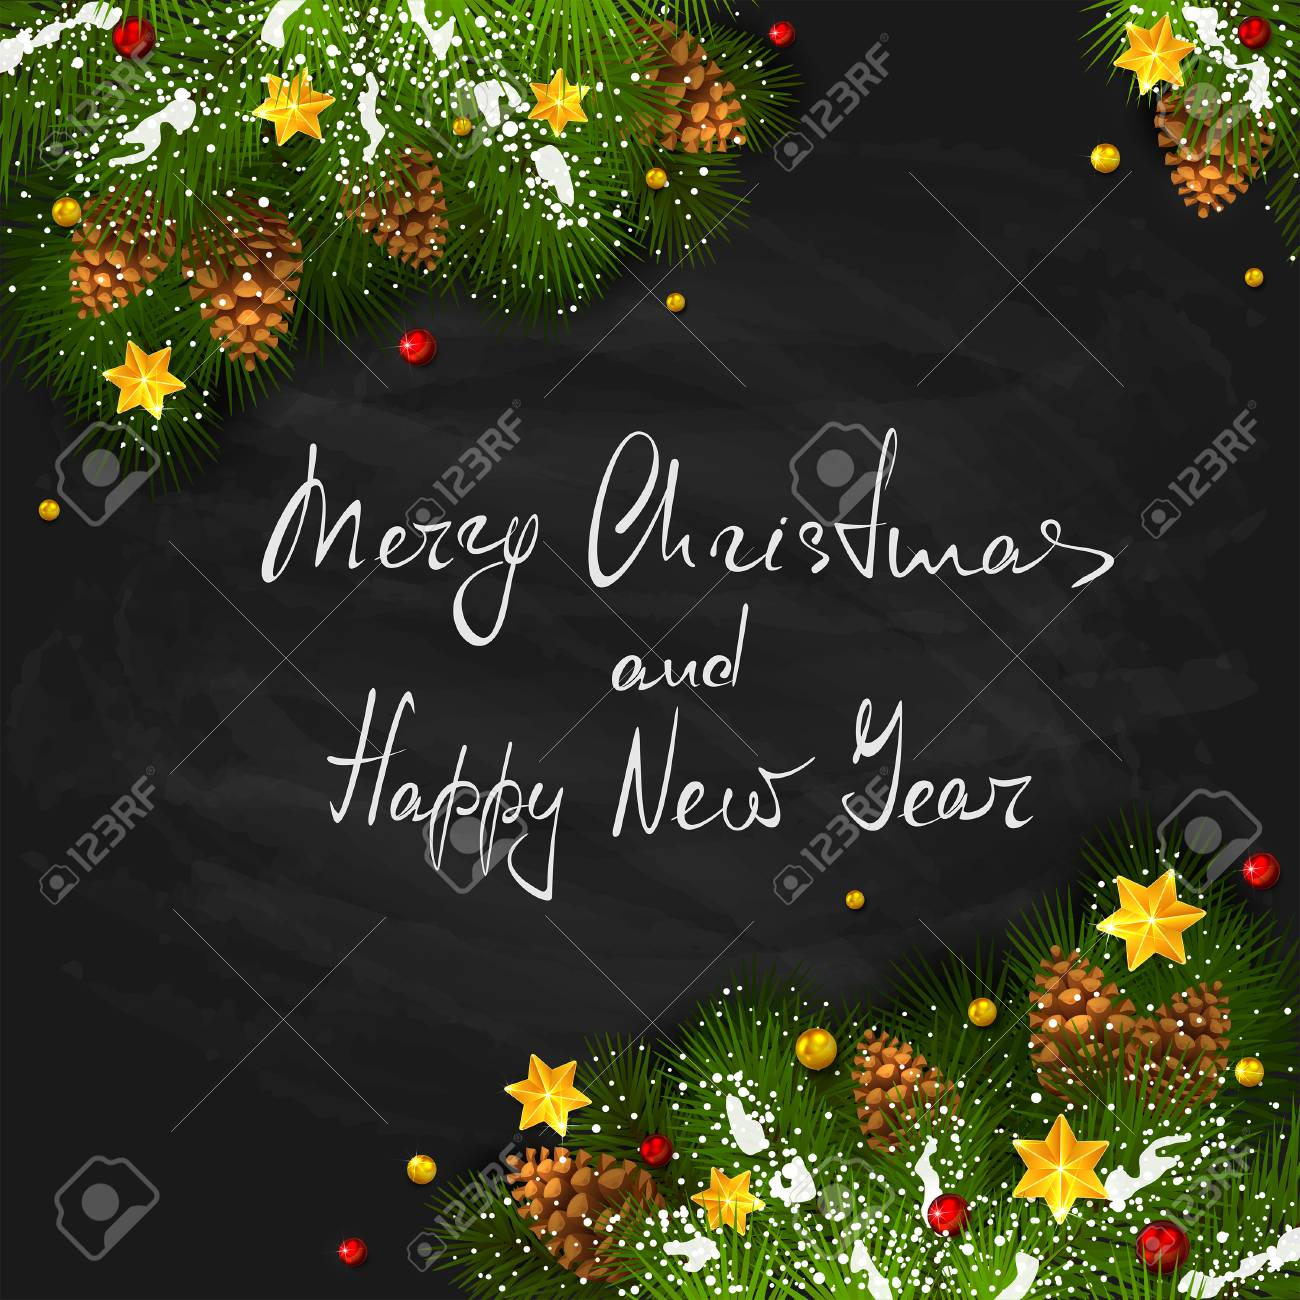 lettering merry christmas and happy new year with holiday decorations on black chalkboard background decorative